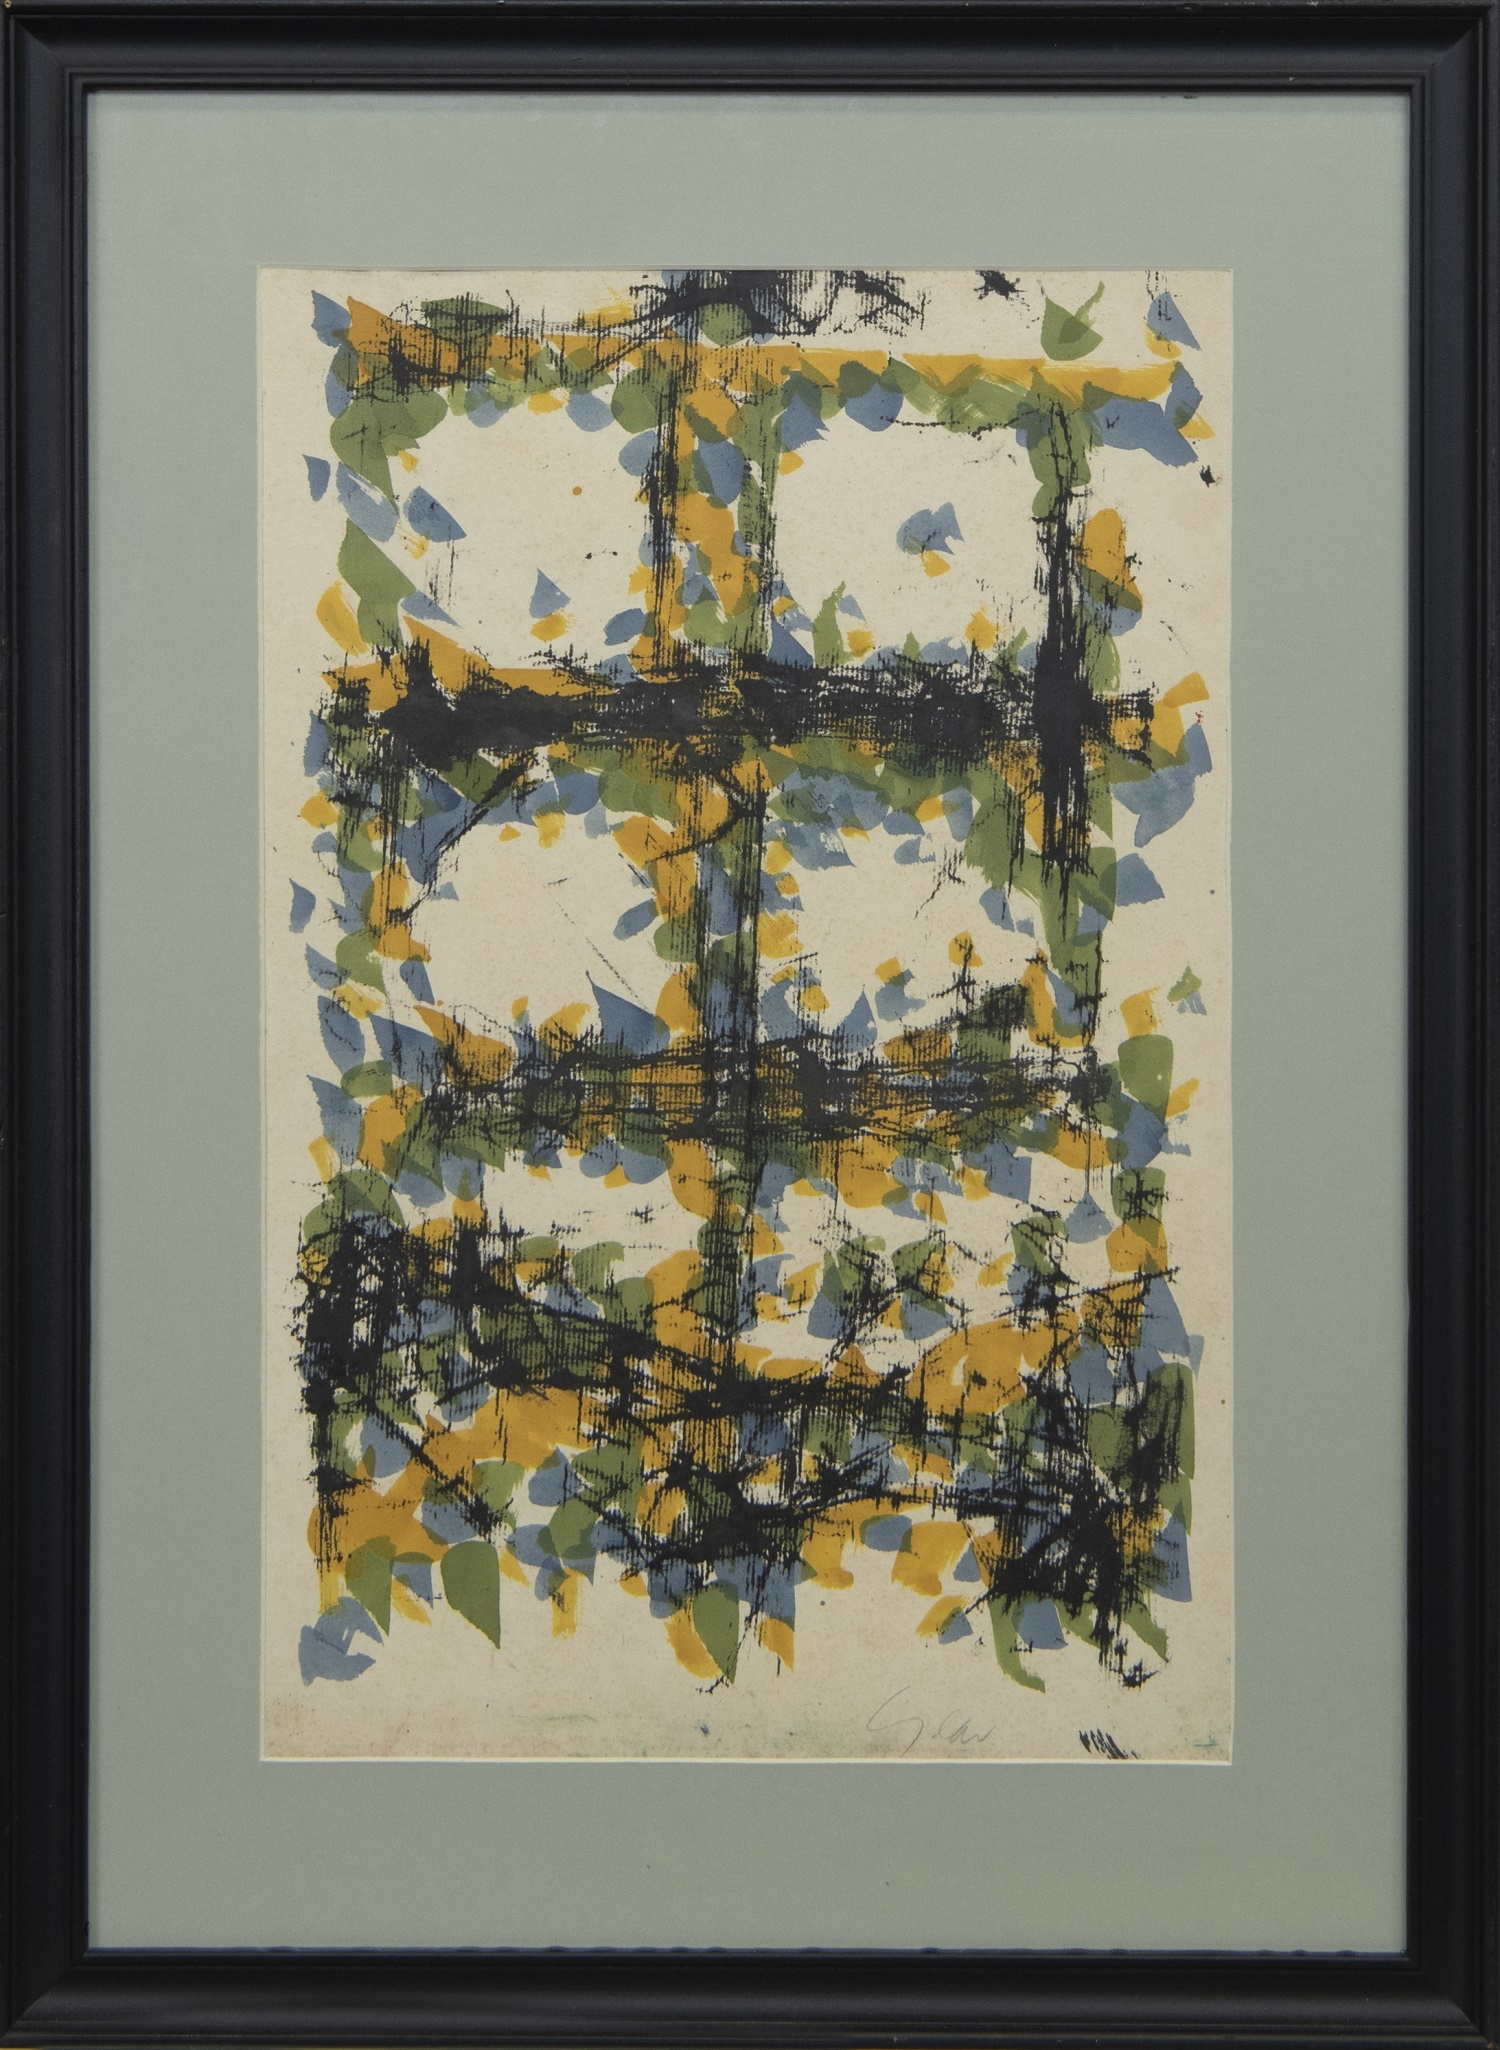 AN UNTITLED MONOTYPE BY WILLIAM GEAR